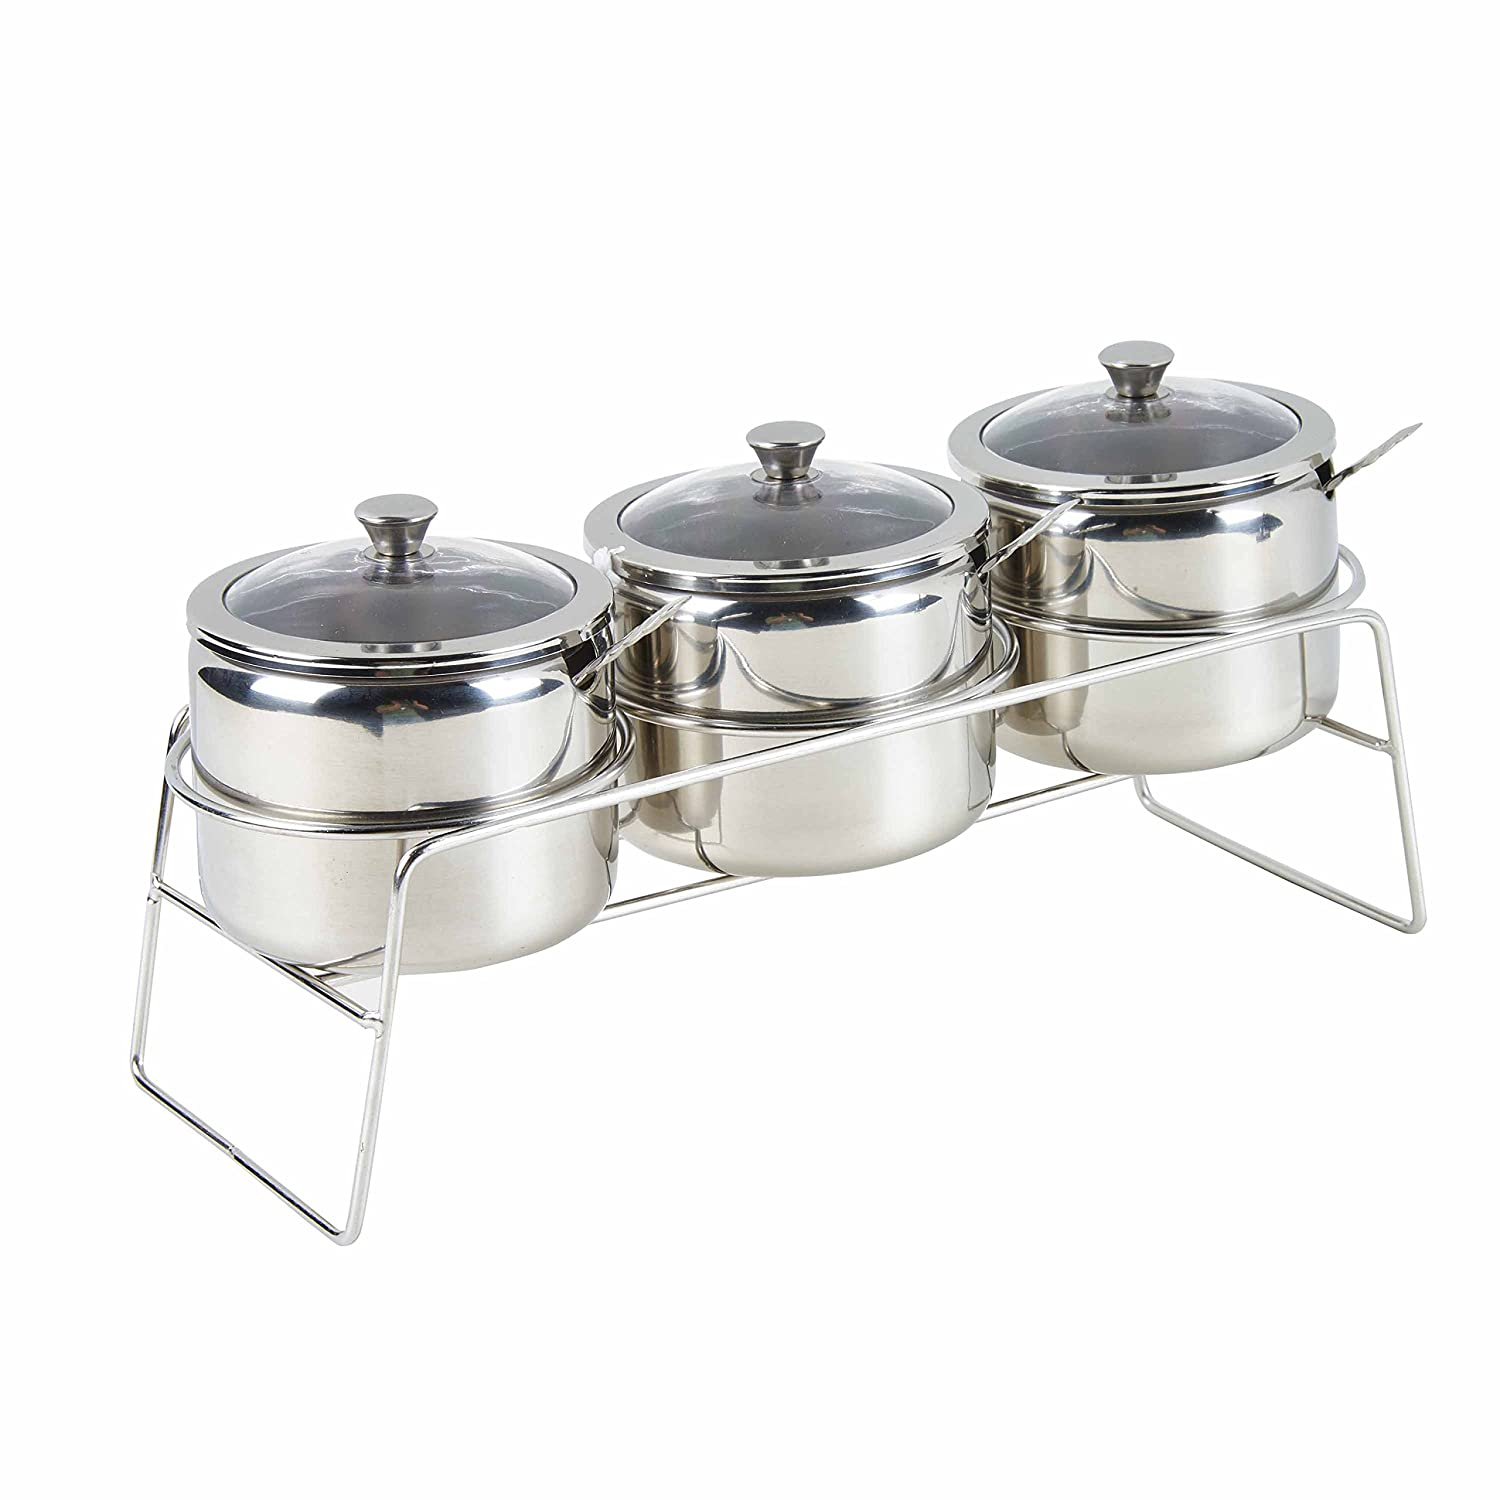 UniTendo Set of 4 Acrylic Seasoning Box Storage Container Condiment Jar Condiments Server Pots - Cream and Sugar Canister,Dip Bowls Set with Lids,Spoons&Tray KINBEDY?